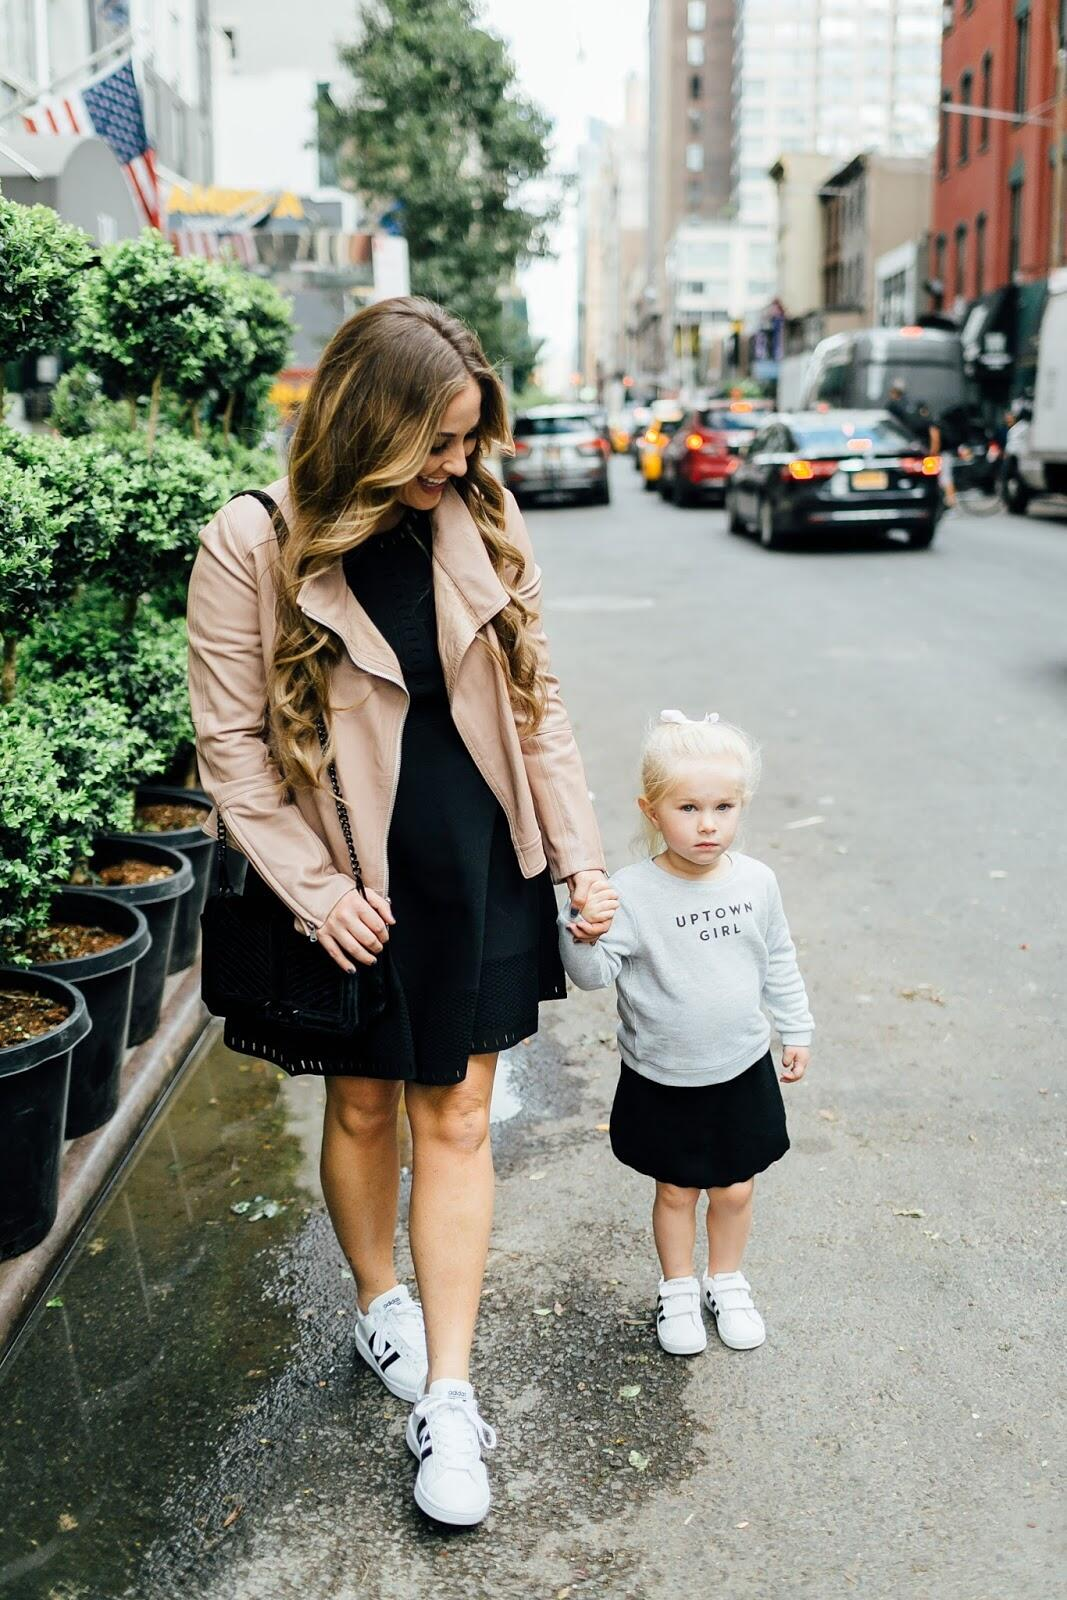 Family Friendly NYC Travel Guide by East Memphis mom blogger Walking in Memphis in High Heels